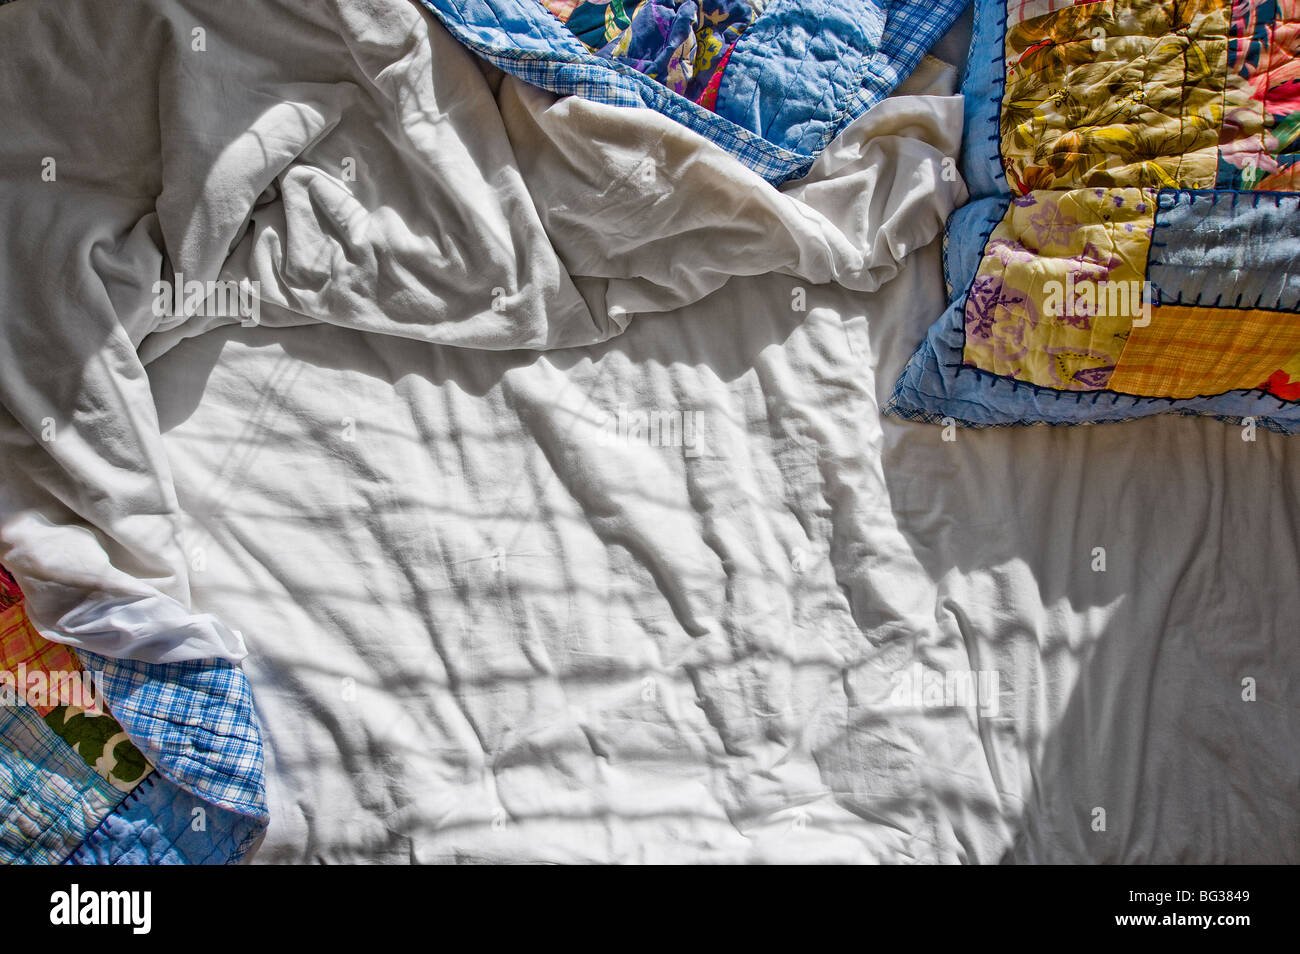 Messy Bed With Wrinkled Sheets And Shadows - Stock Image